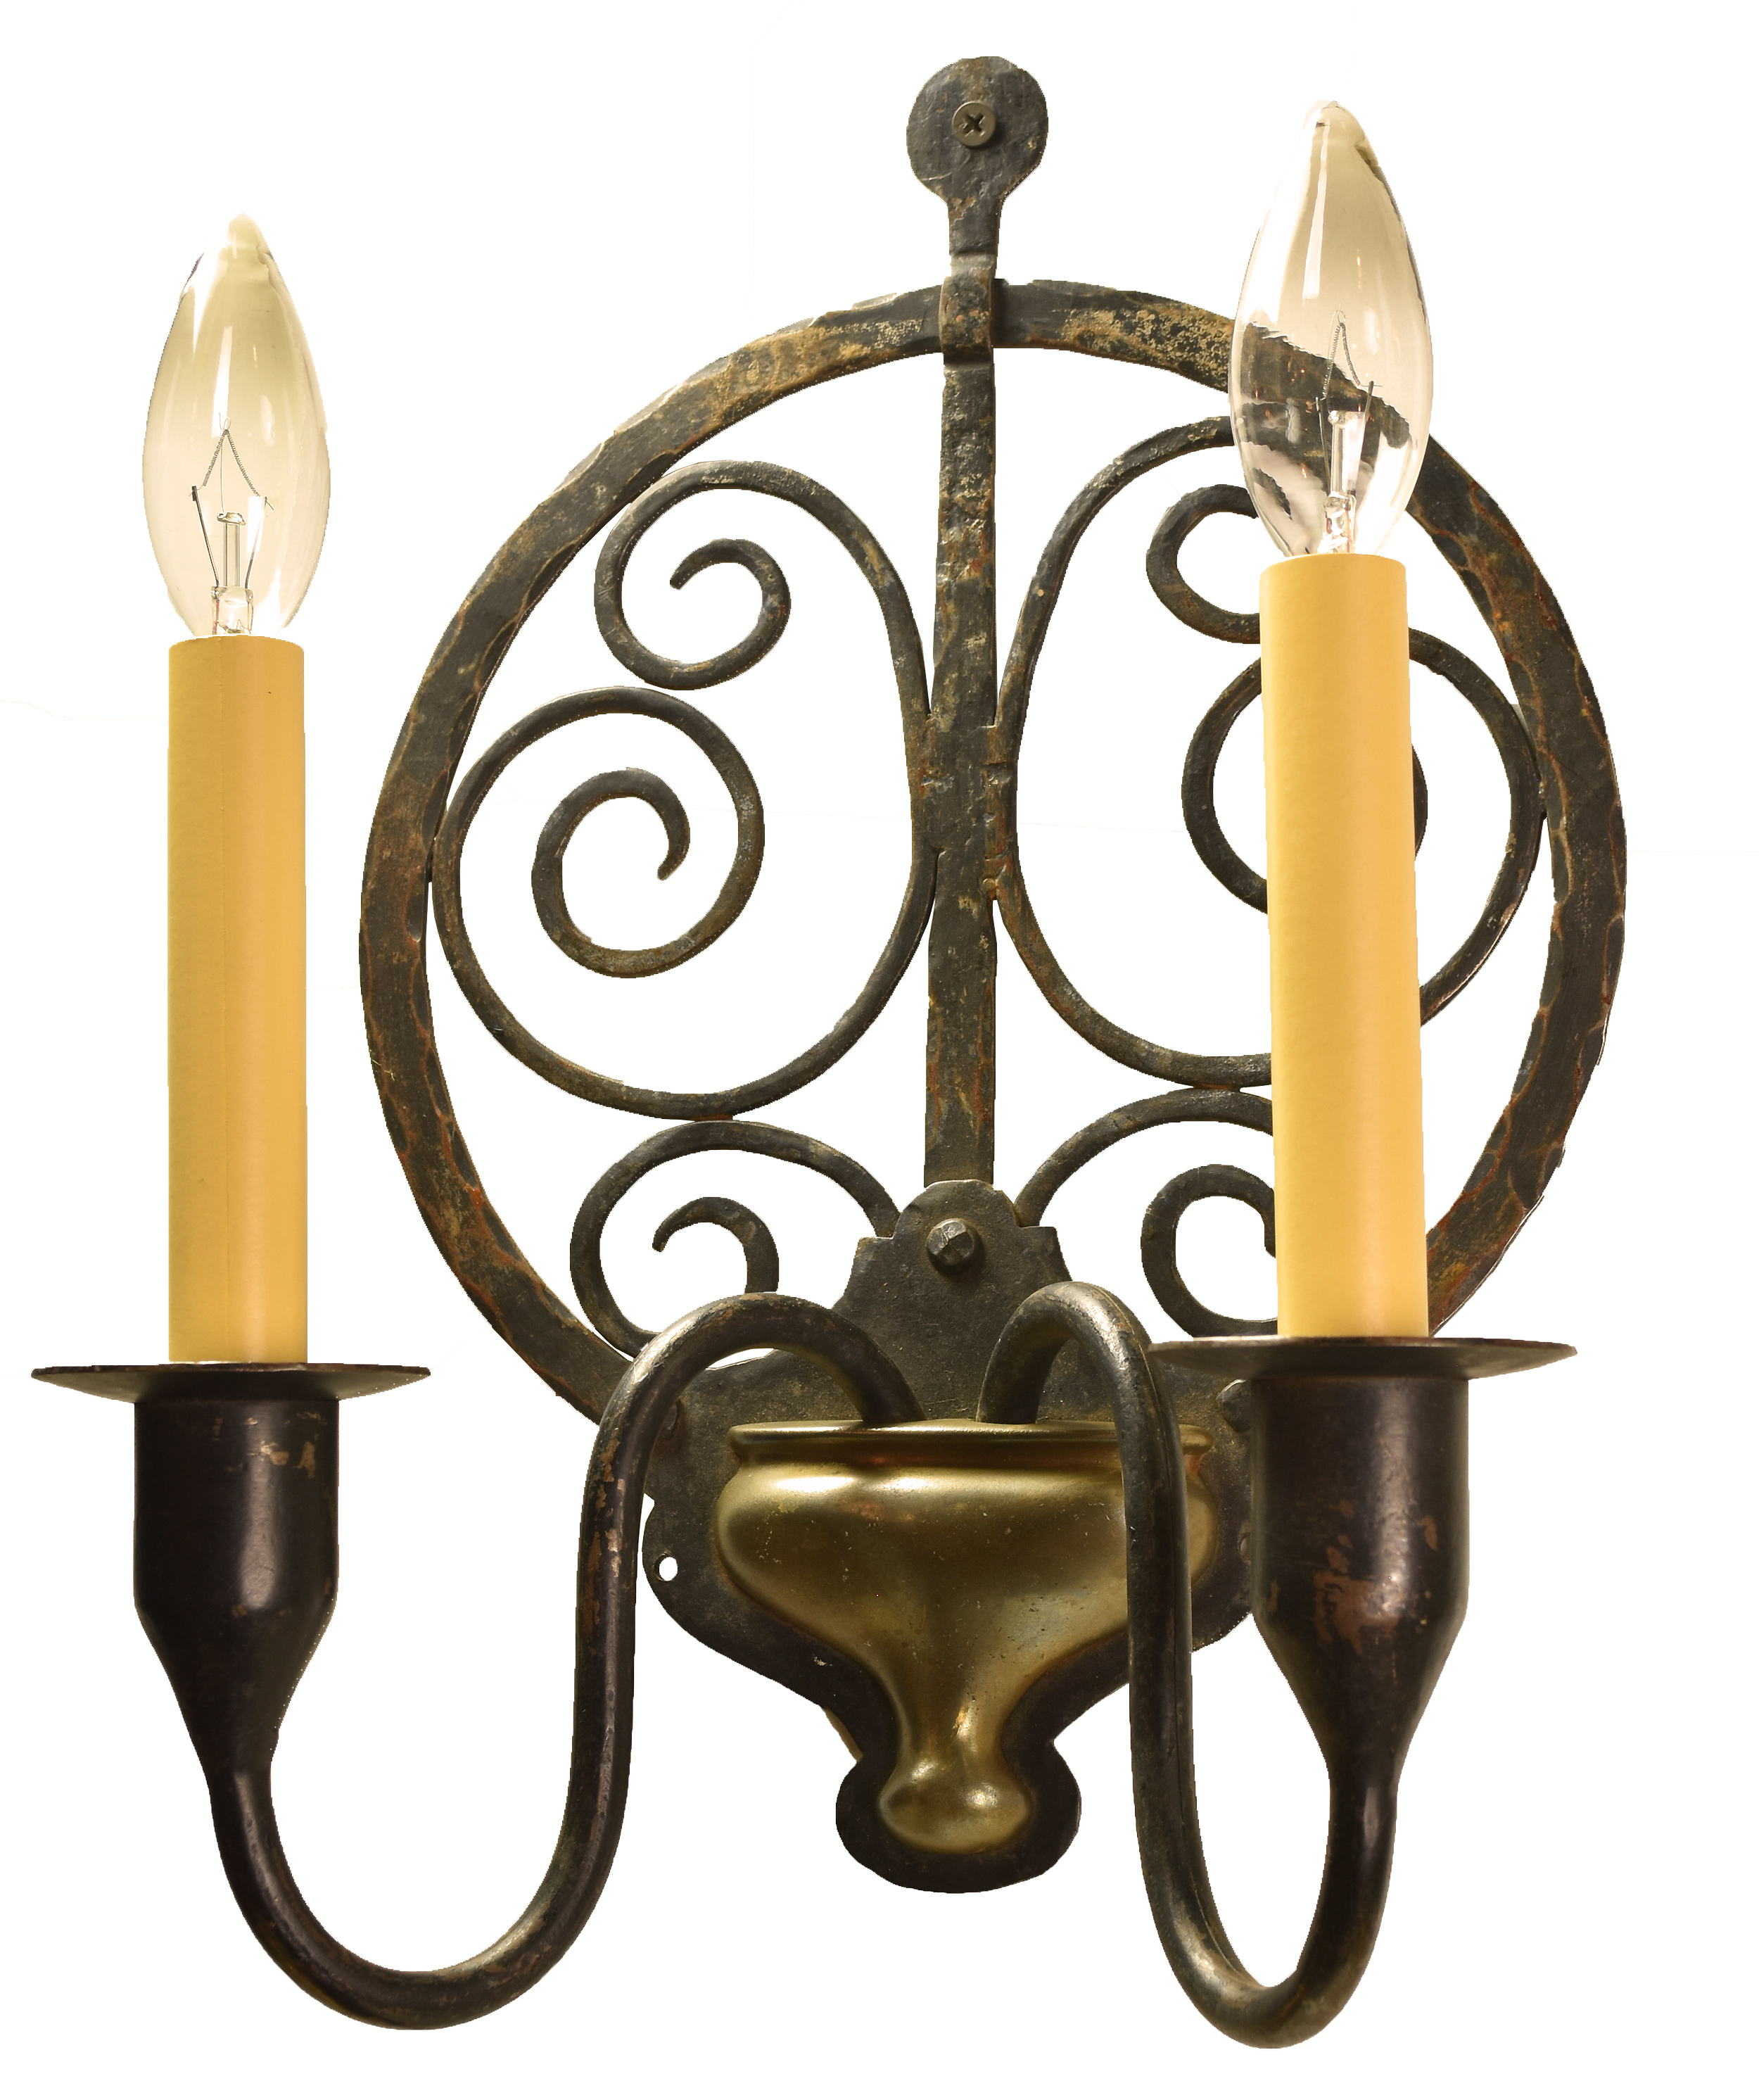 48010 artscrafts 2 candle sconce 3.jpg